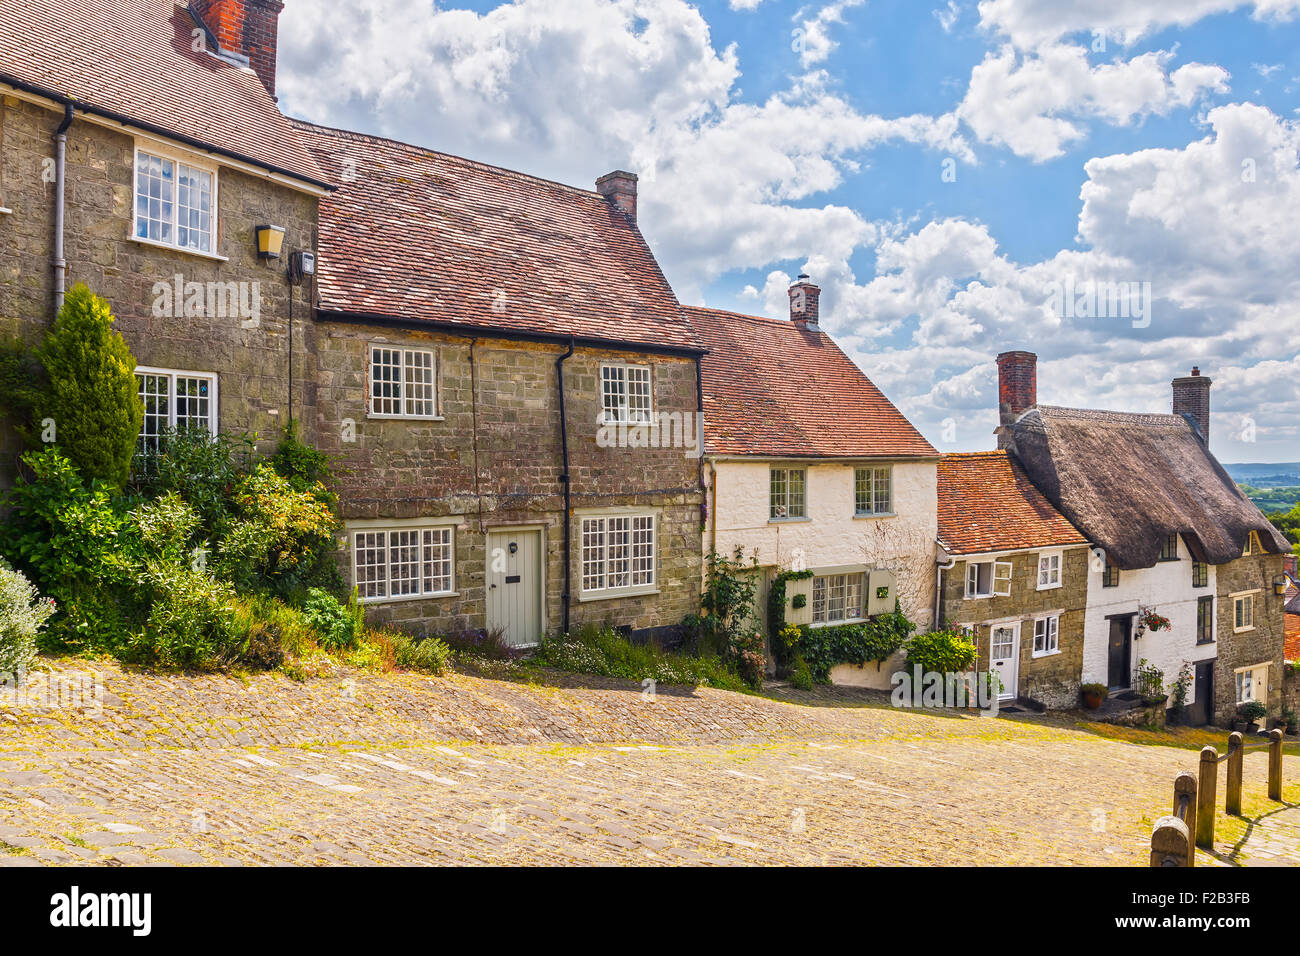 Famous view of Picturesque cottages on cobbled street at Gold Hill, Shaftesbury Dorset England UK Europe - Stock Image